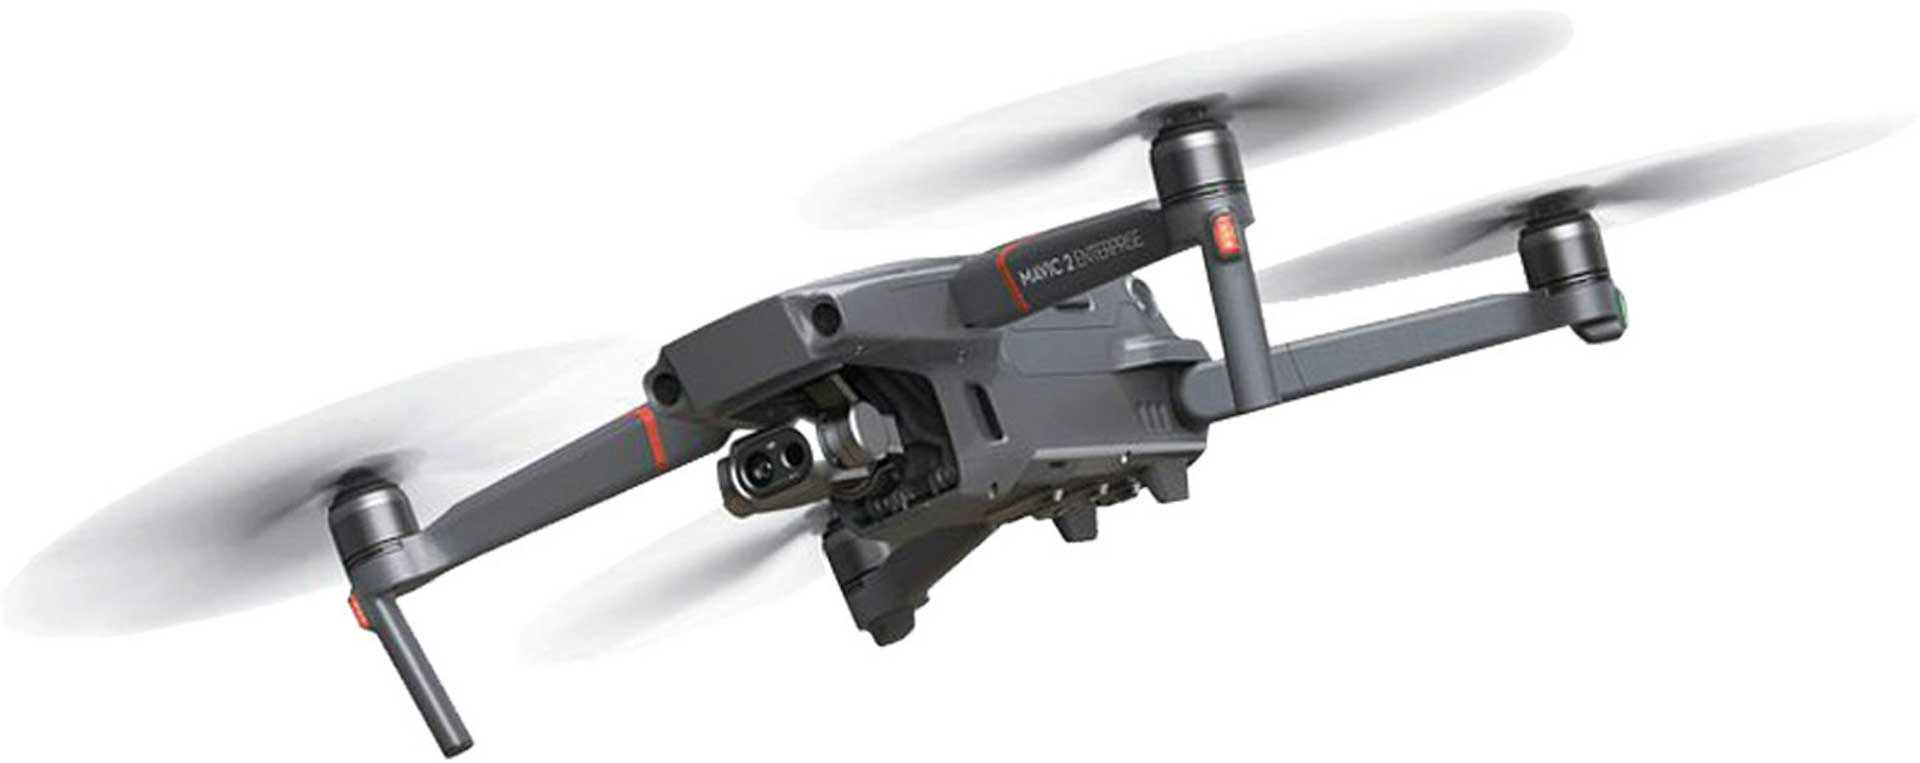 DJI MAVIC 2 ENTERPRISE UNIVERSAL EDITION WITH FLIR DUAL THERMAL IMAGING CAMERA